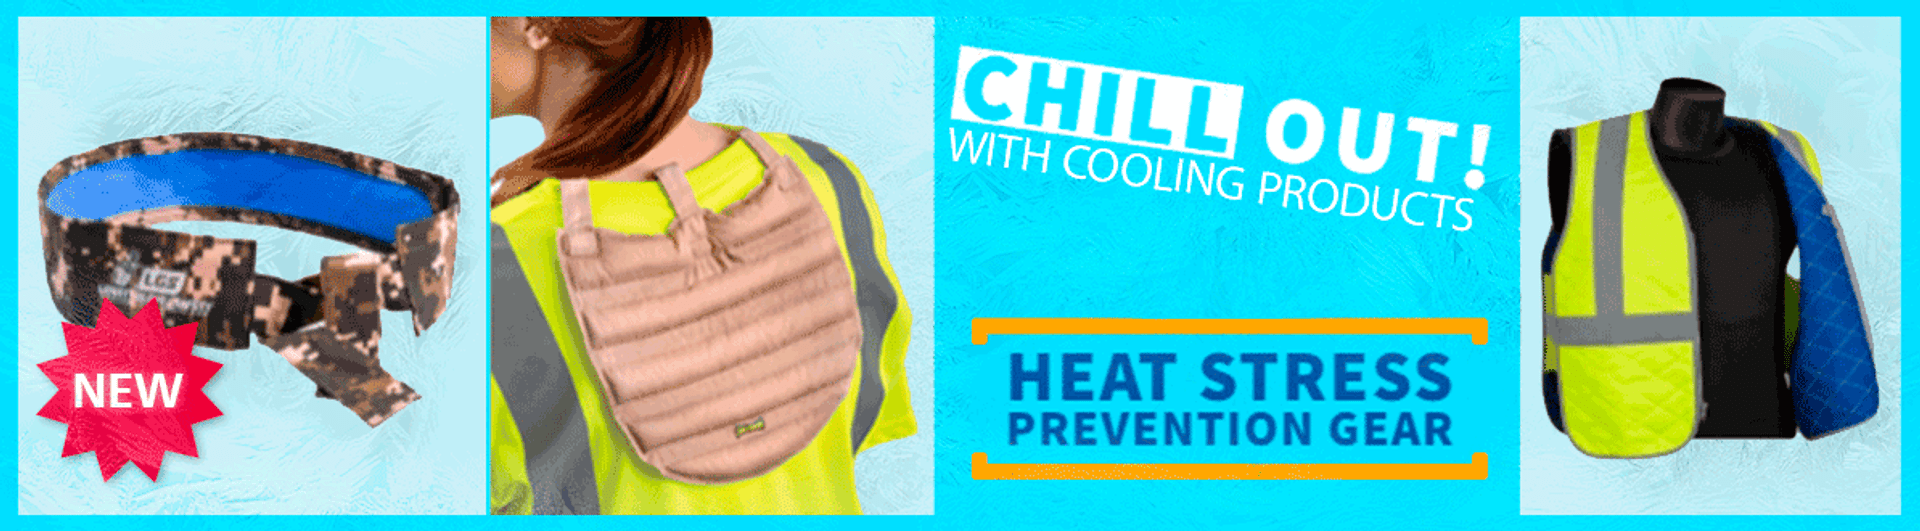 heat stress prevention gear